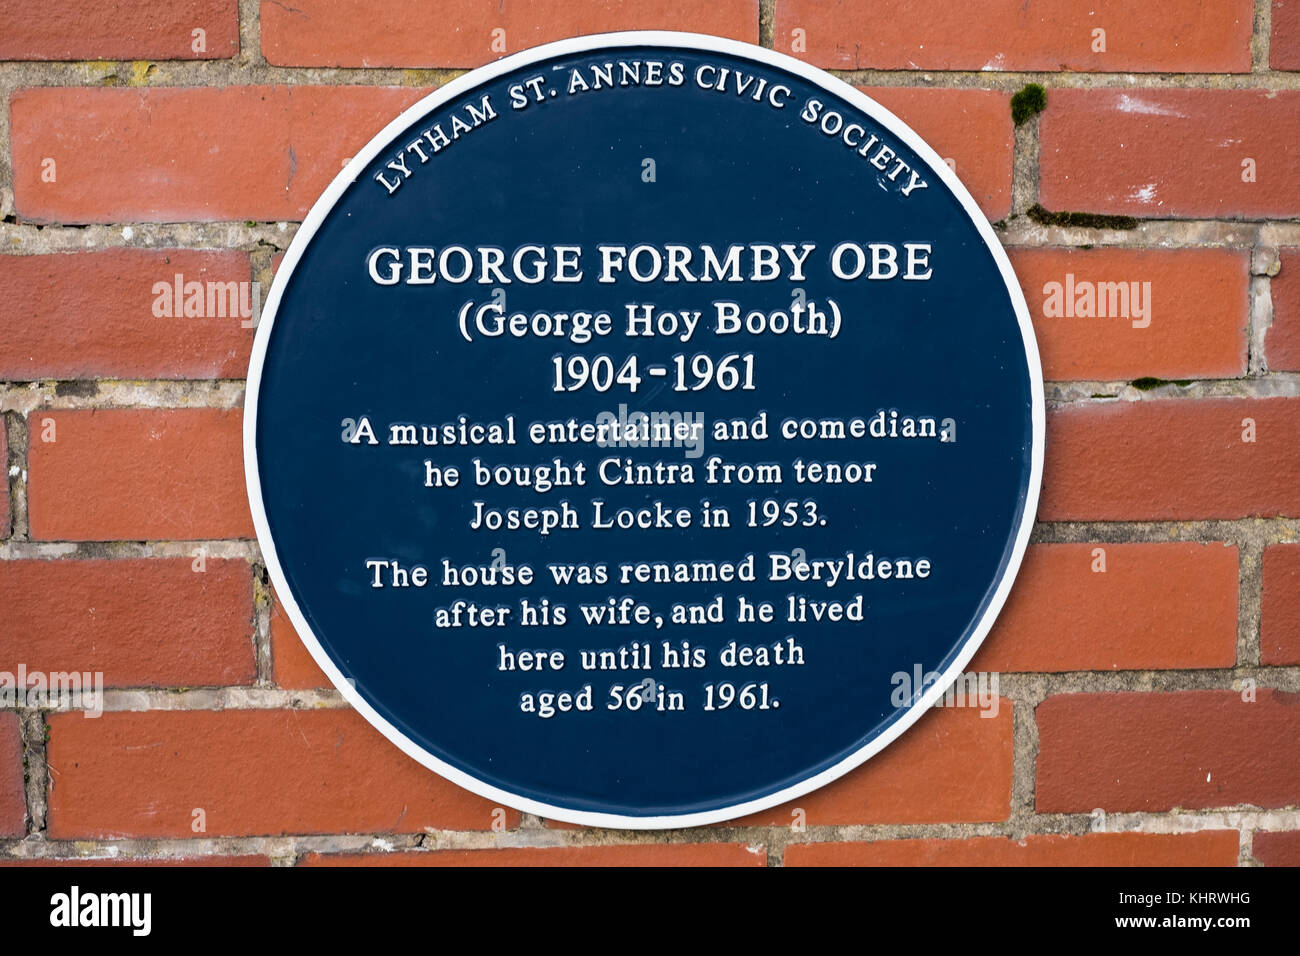 A Blue plaque commemorating the past home of George Formby OBE, at Lytham St Annes, Lancashire. - Stock Image